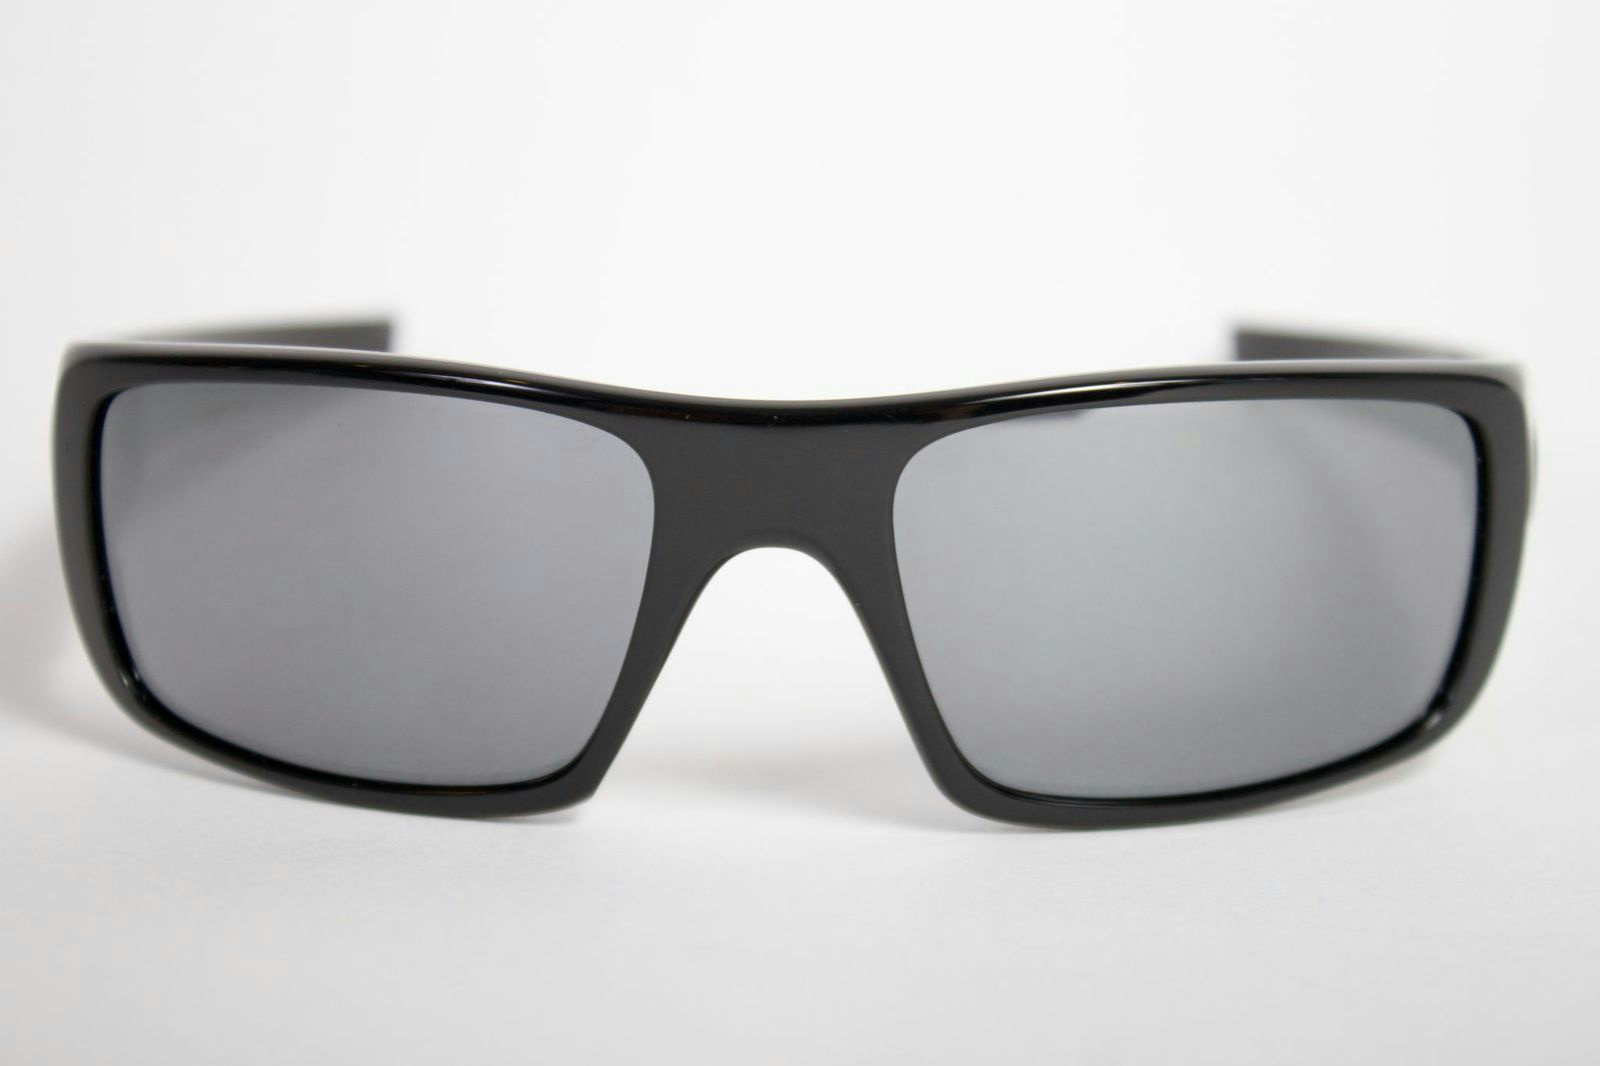 af5edc7171c Where To Buy Oakley Sunglasses In Vancouver